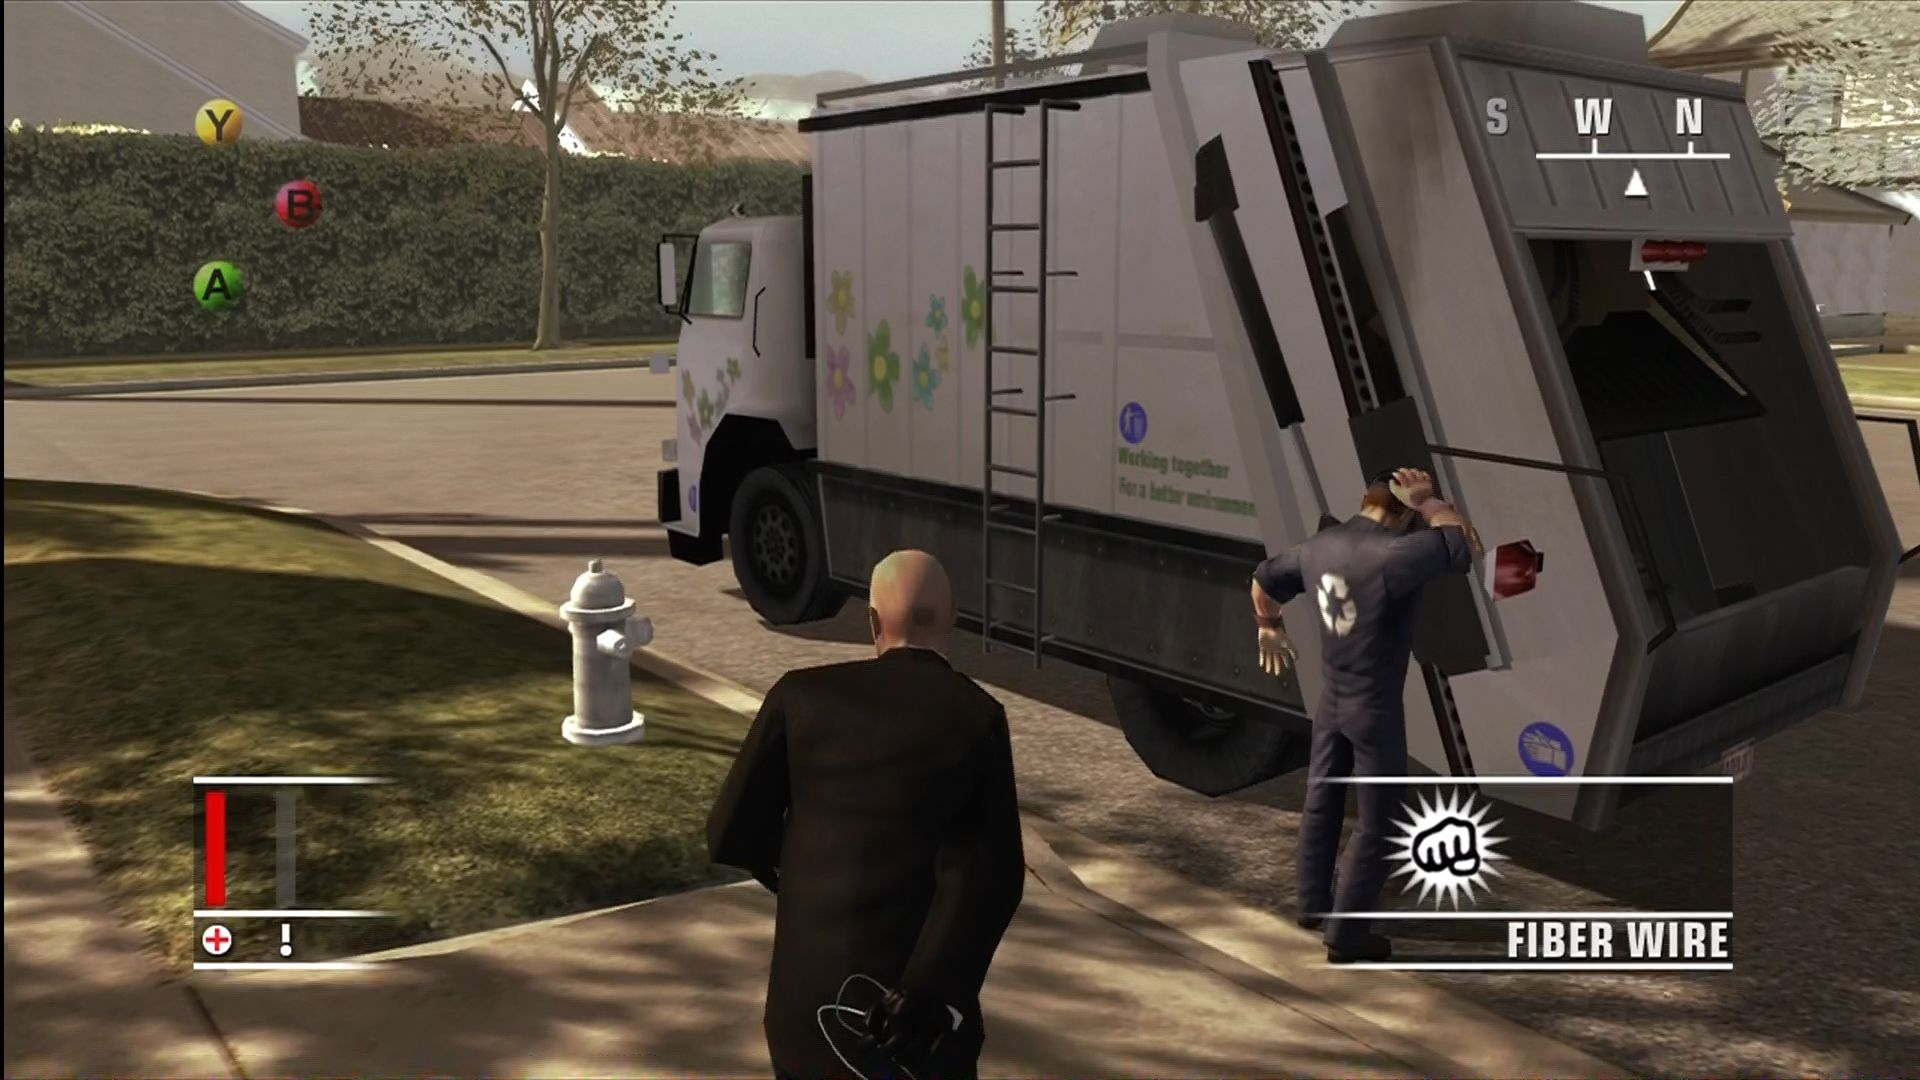 Hitman: Blood Money Xbox 360 47 hides his weapon as he sneaks up on people.